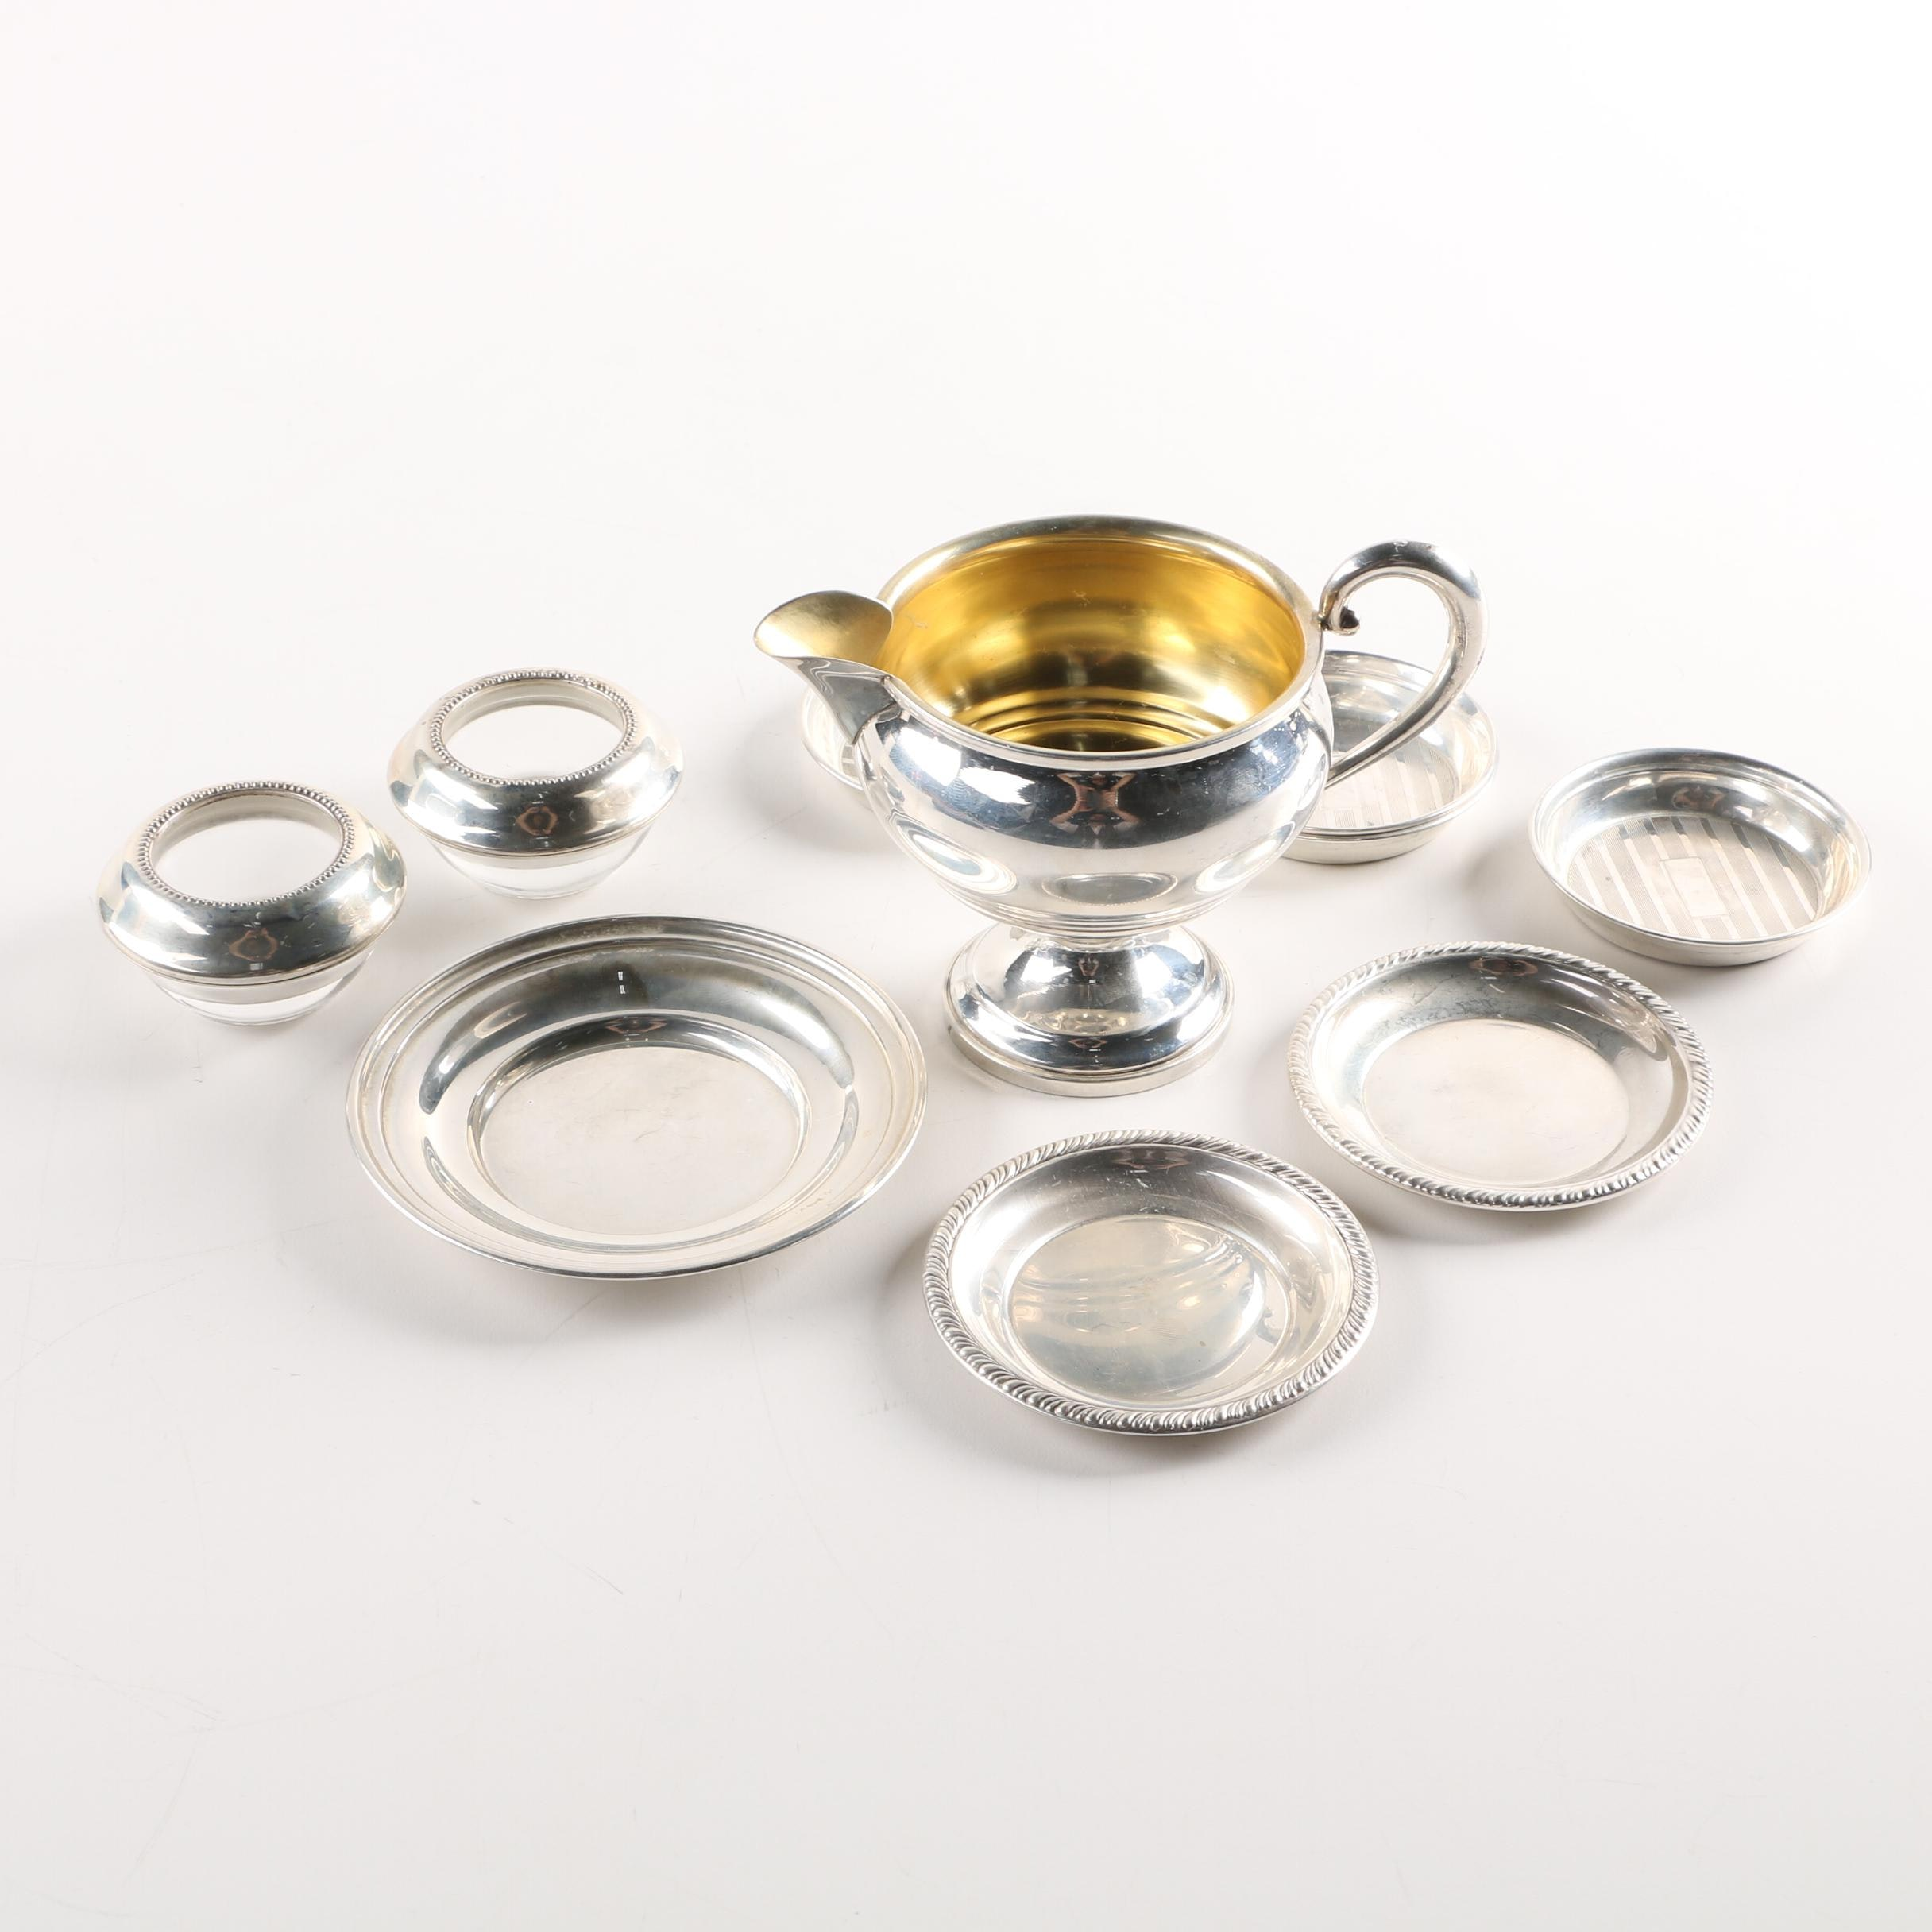 Sterling Silver Salts, Creamer and Individual Dishes